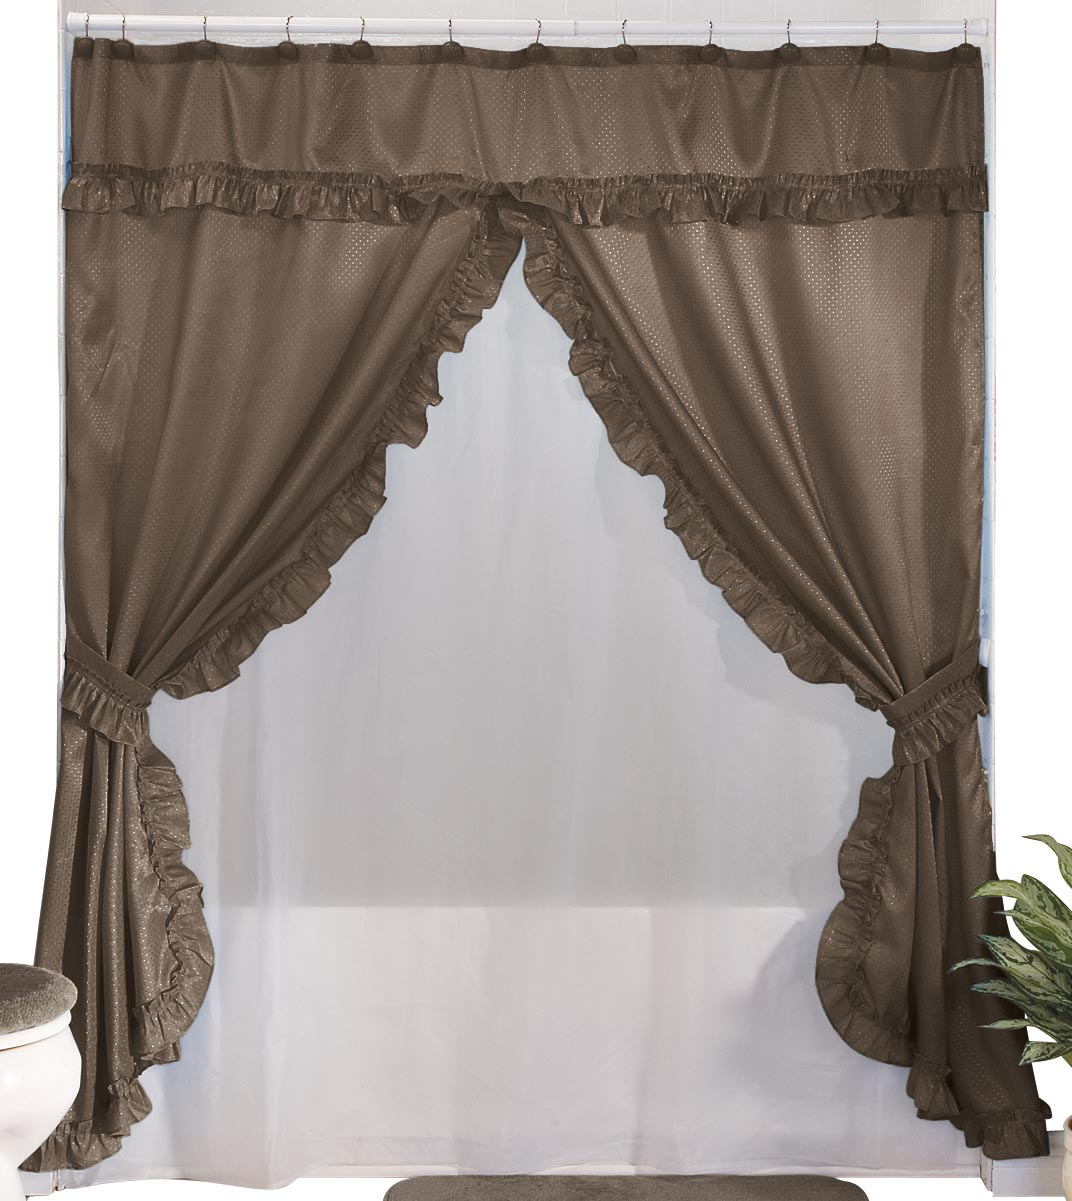 WalterDrake WalterDrake Double Swag Shower Curtains With Valance